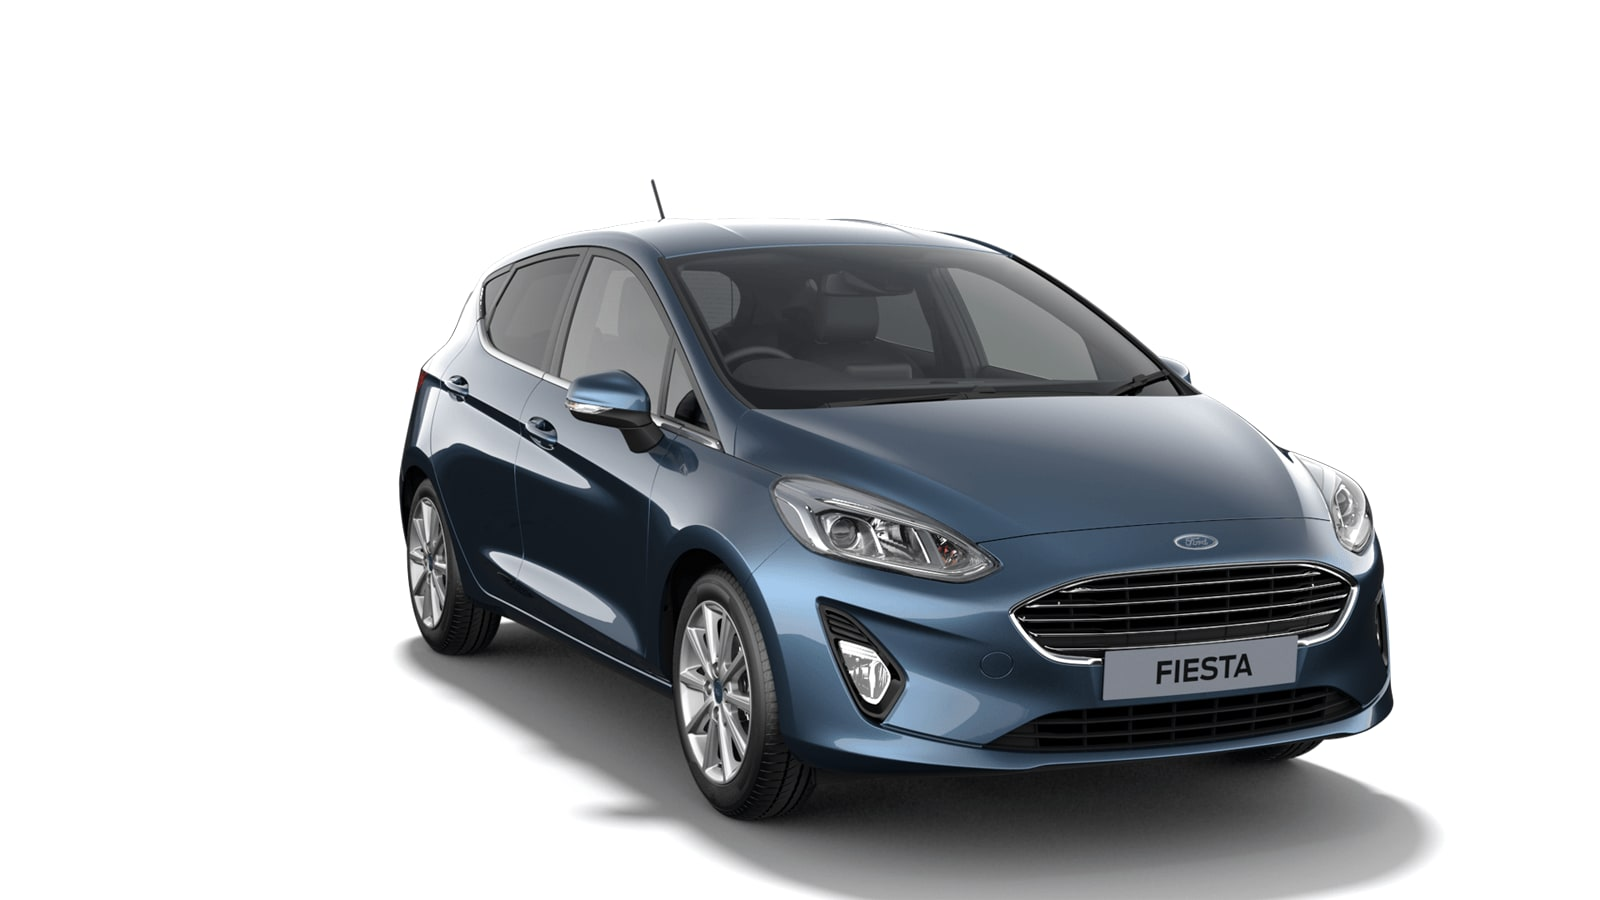 Ford Fiesta Titanium 1.0L EcoBoost 95PS at RGR Garages